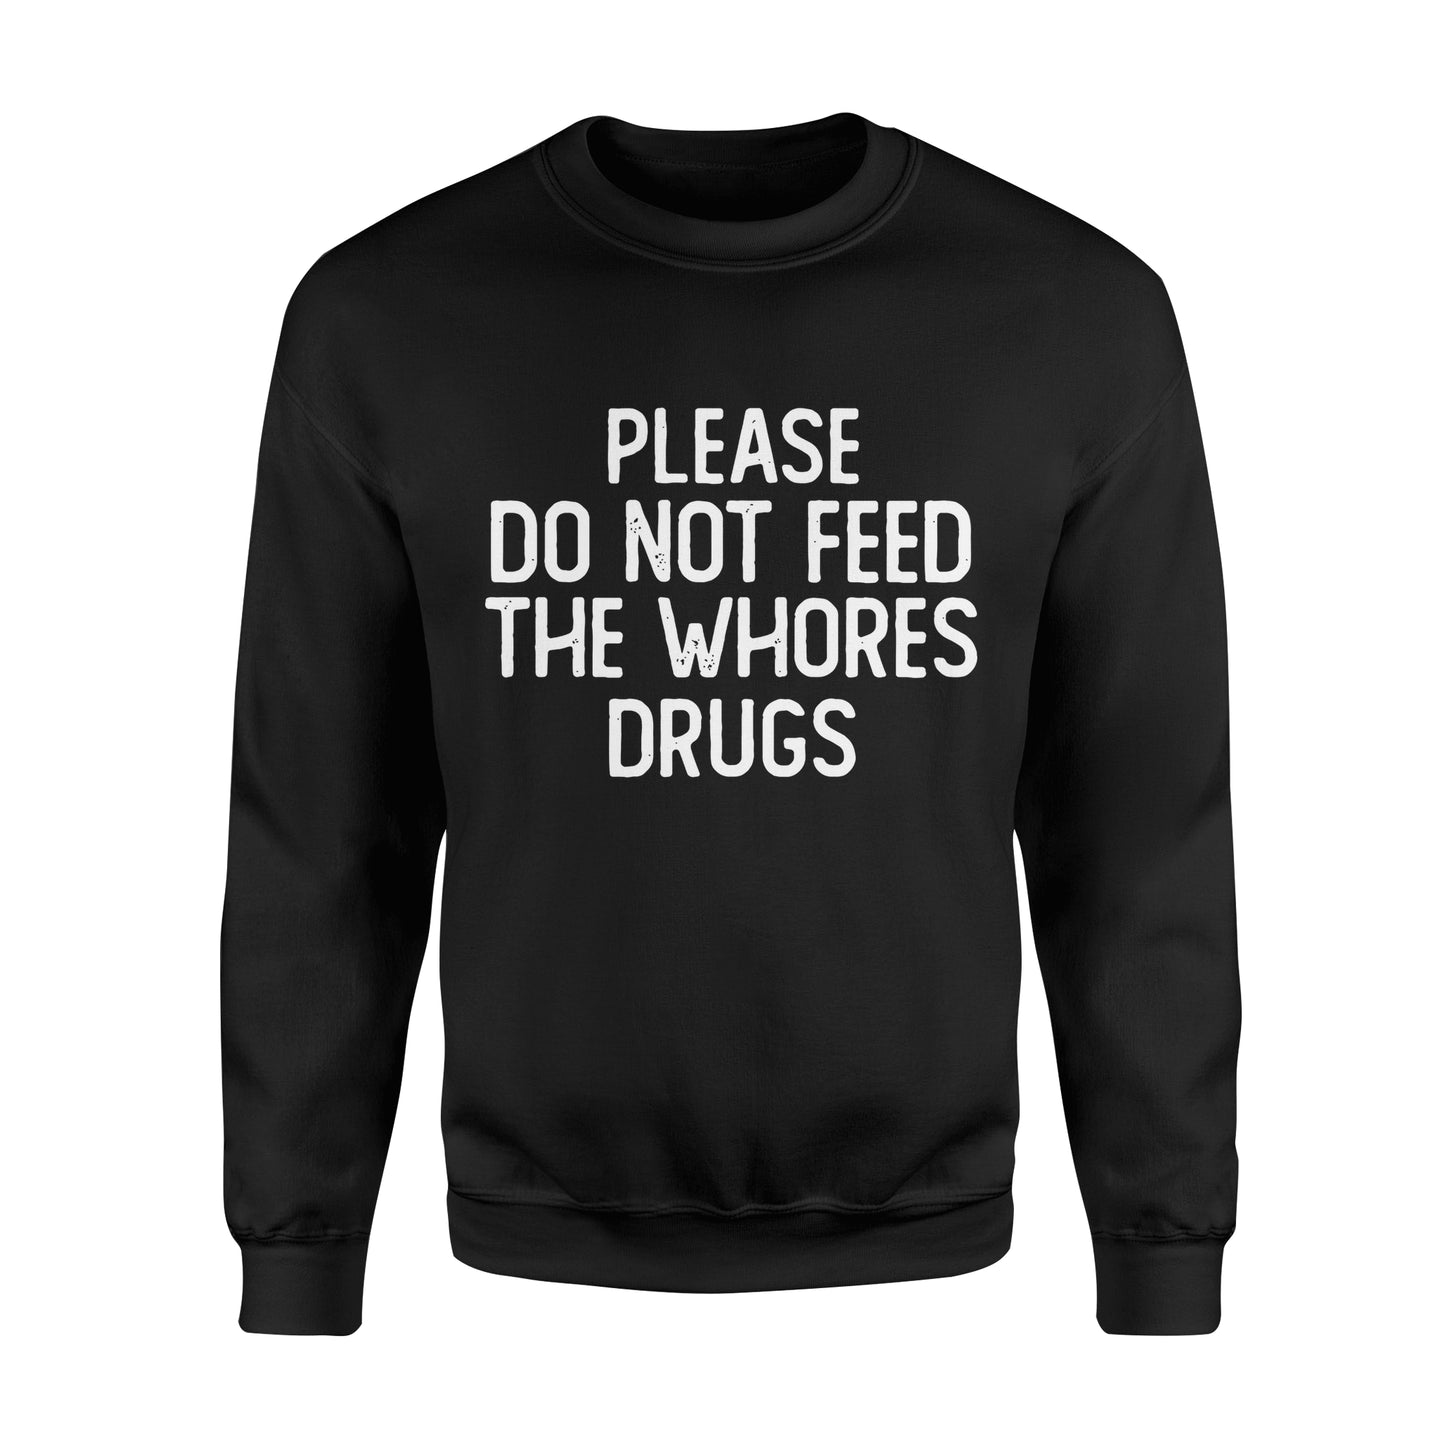 Please Do Not Feed The Whores Drugs - Standard Fleece Sweatshirt Apparel S / Black